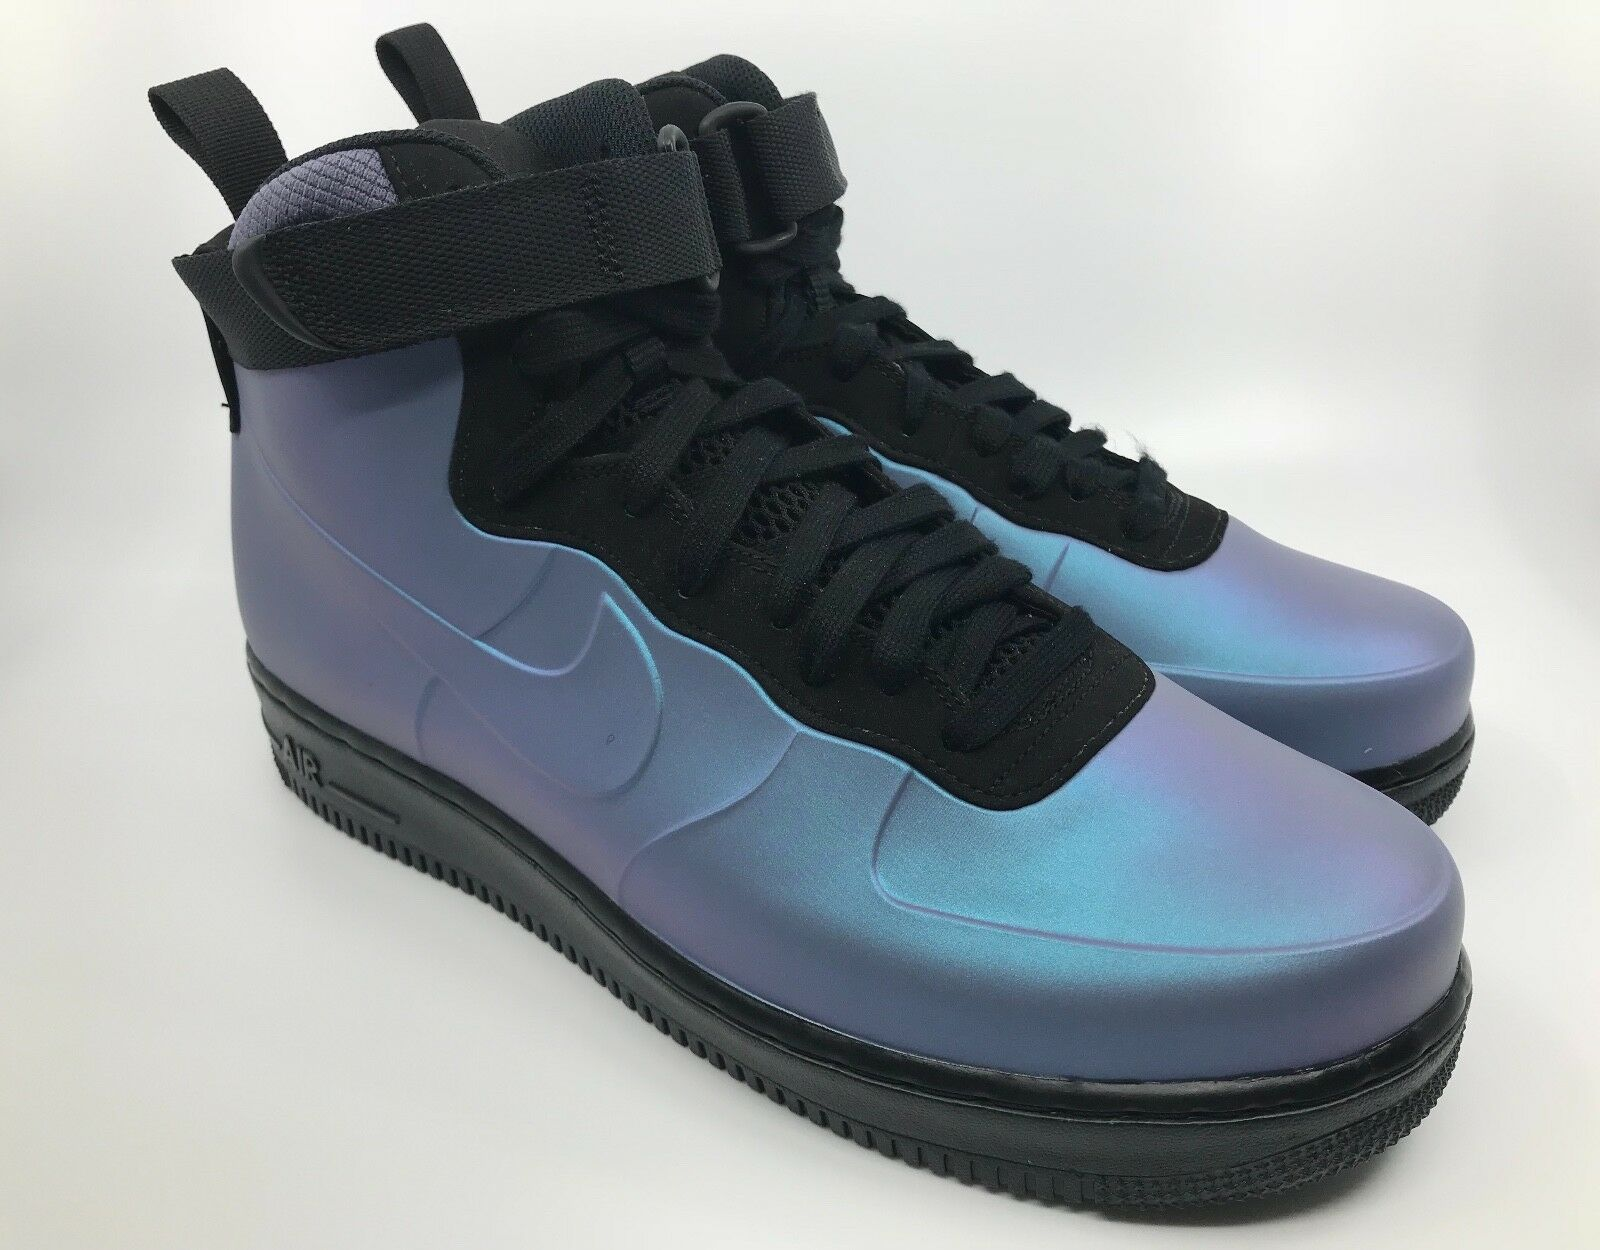 Men's Nike Air Force 1 Foamposite Cup -